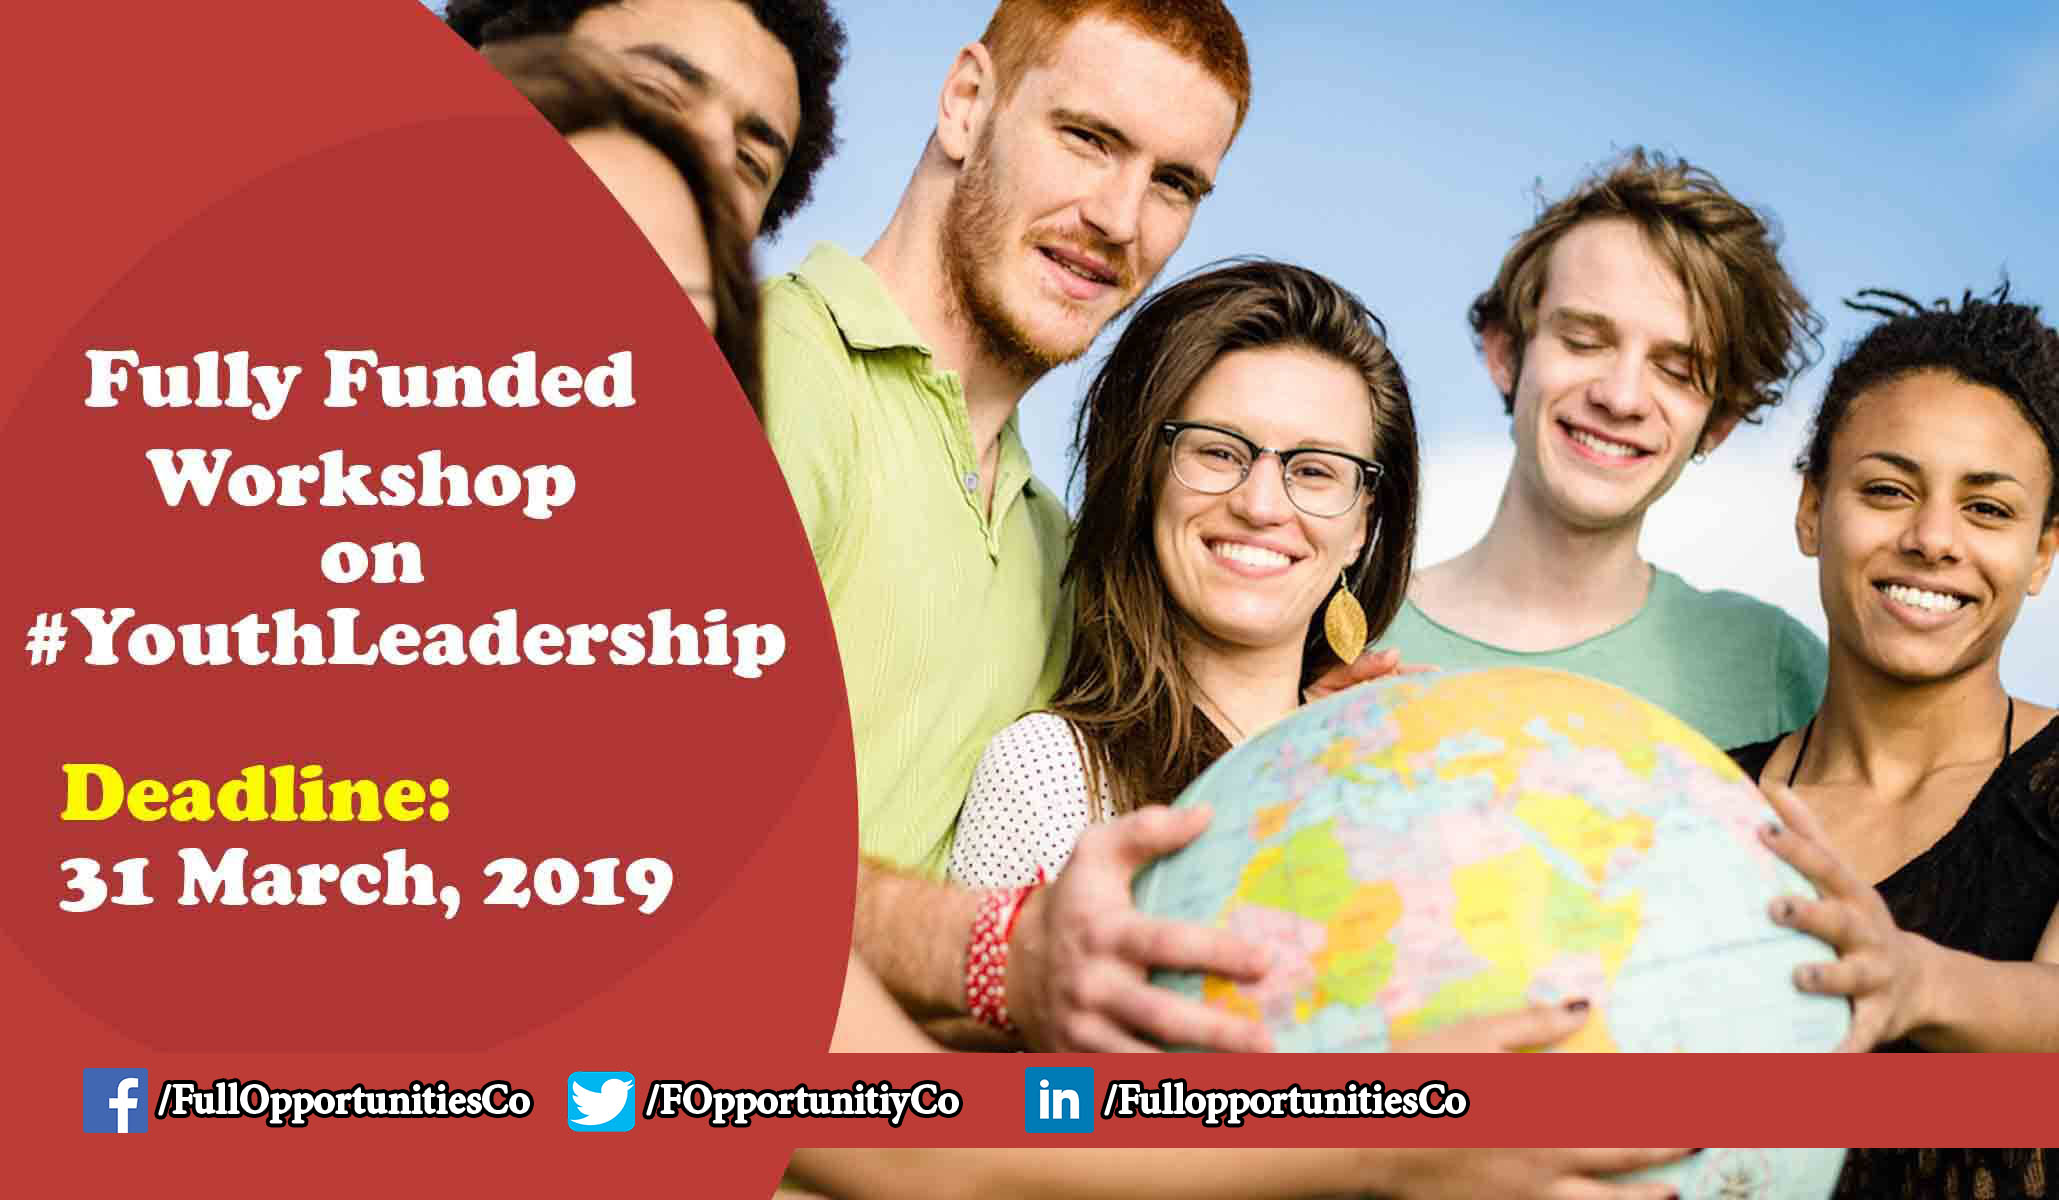 5th Youth Leadership workshop on GCED 2019